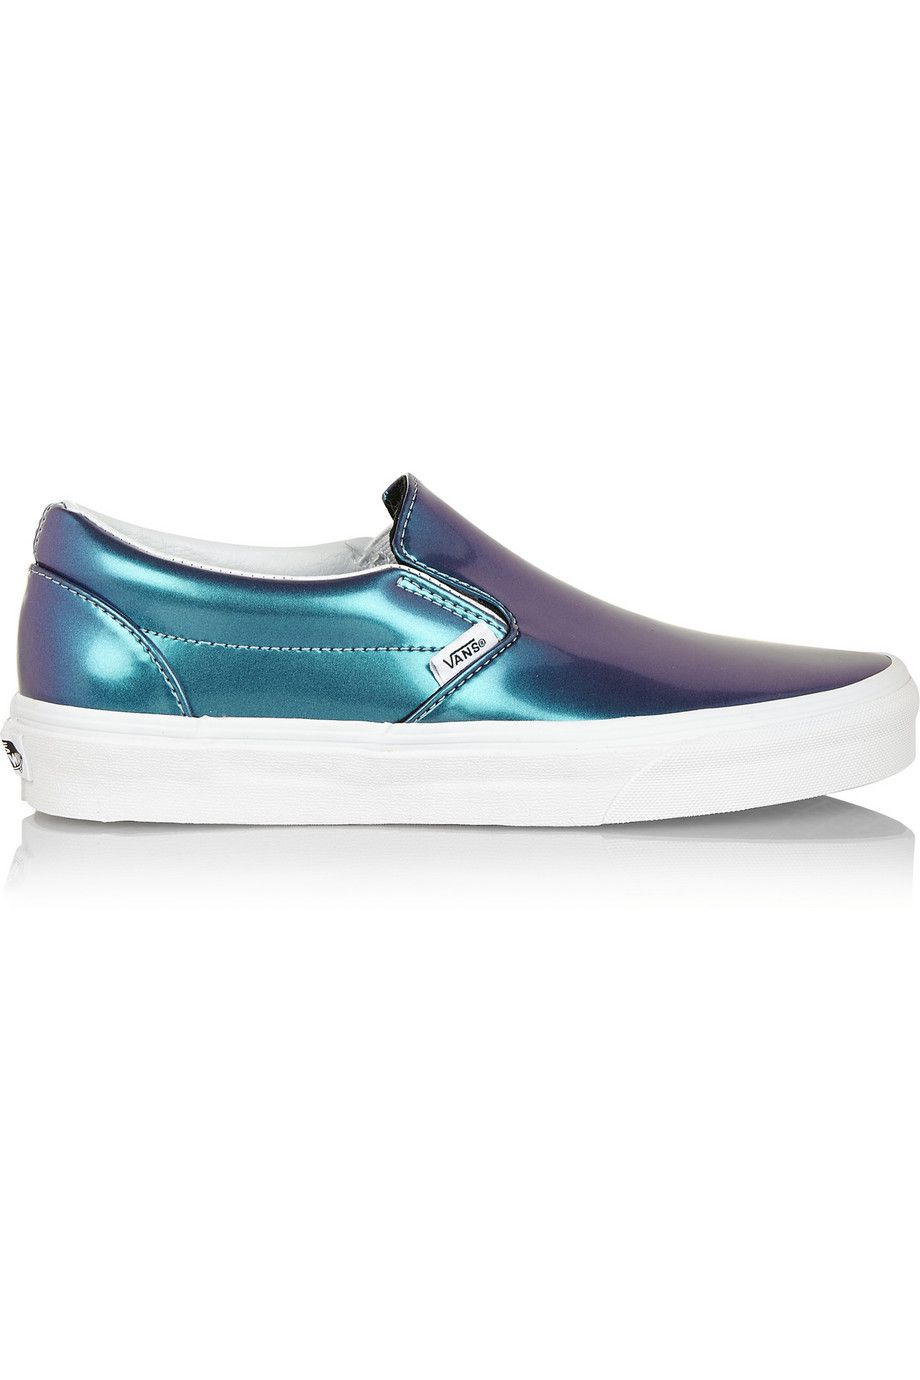 570e756ff605 Holographic leather slip-on sneakers   Vans  vans  slipon  sneakers  shoes   holographic  trend